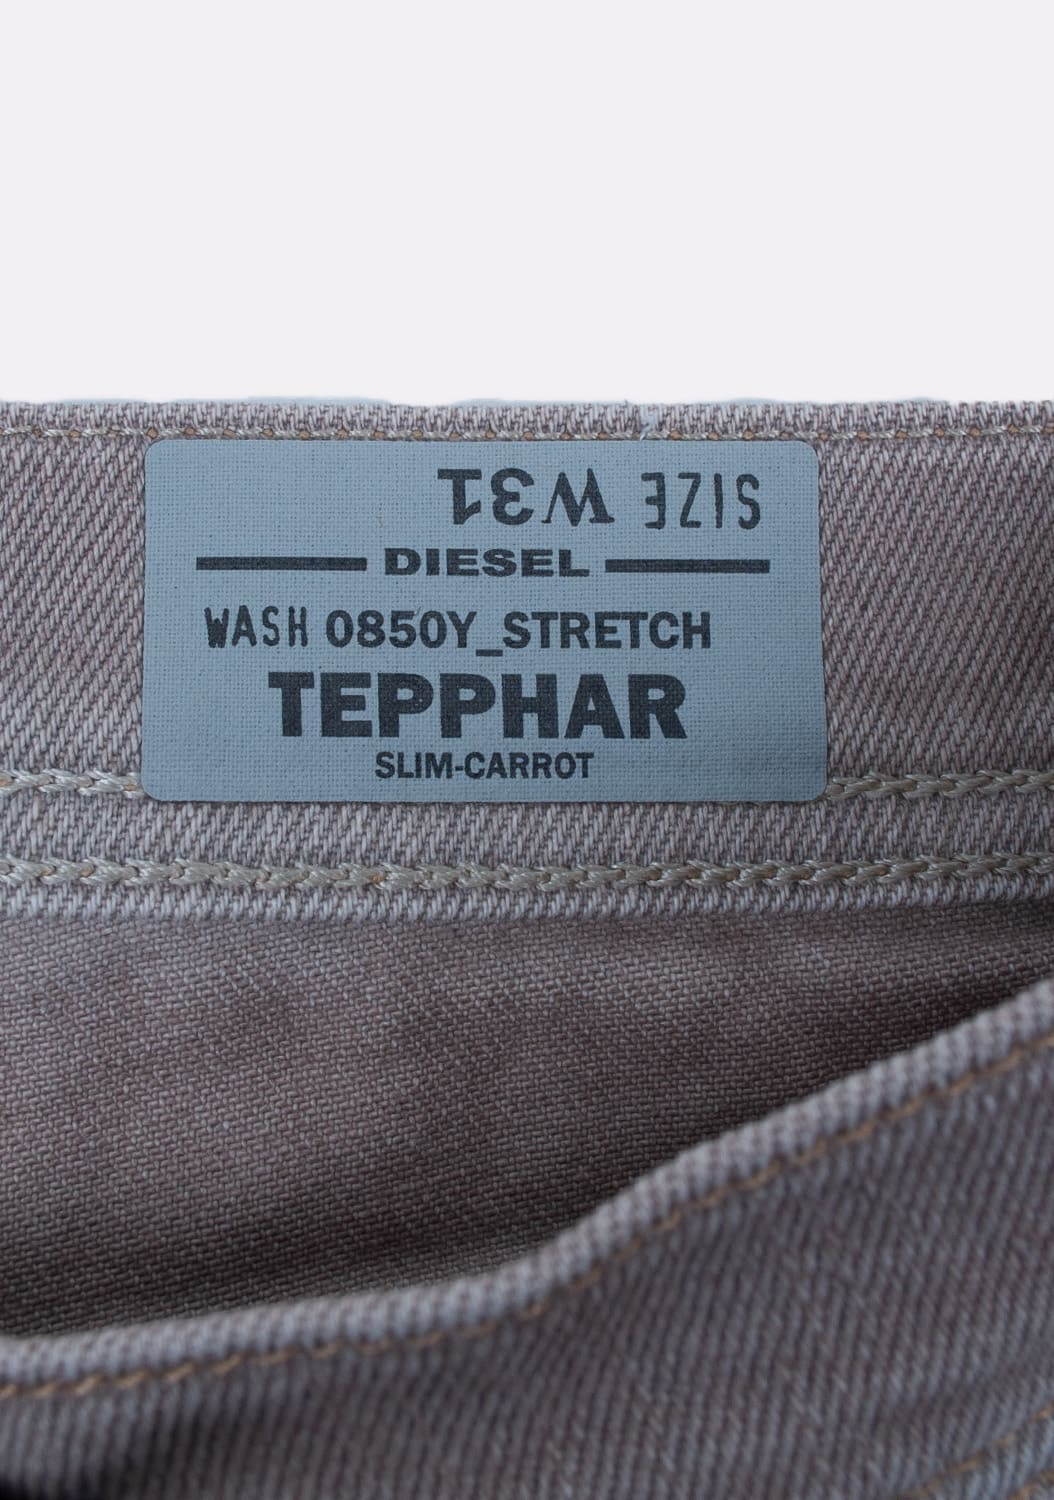 Diesel-Tepphar-0850Y-Stretch-Slim-Carrot-dzinsai-dydis-31 (11)